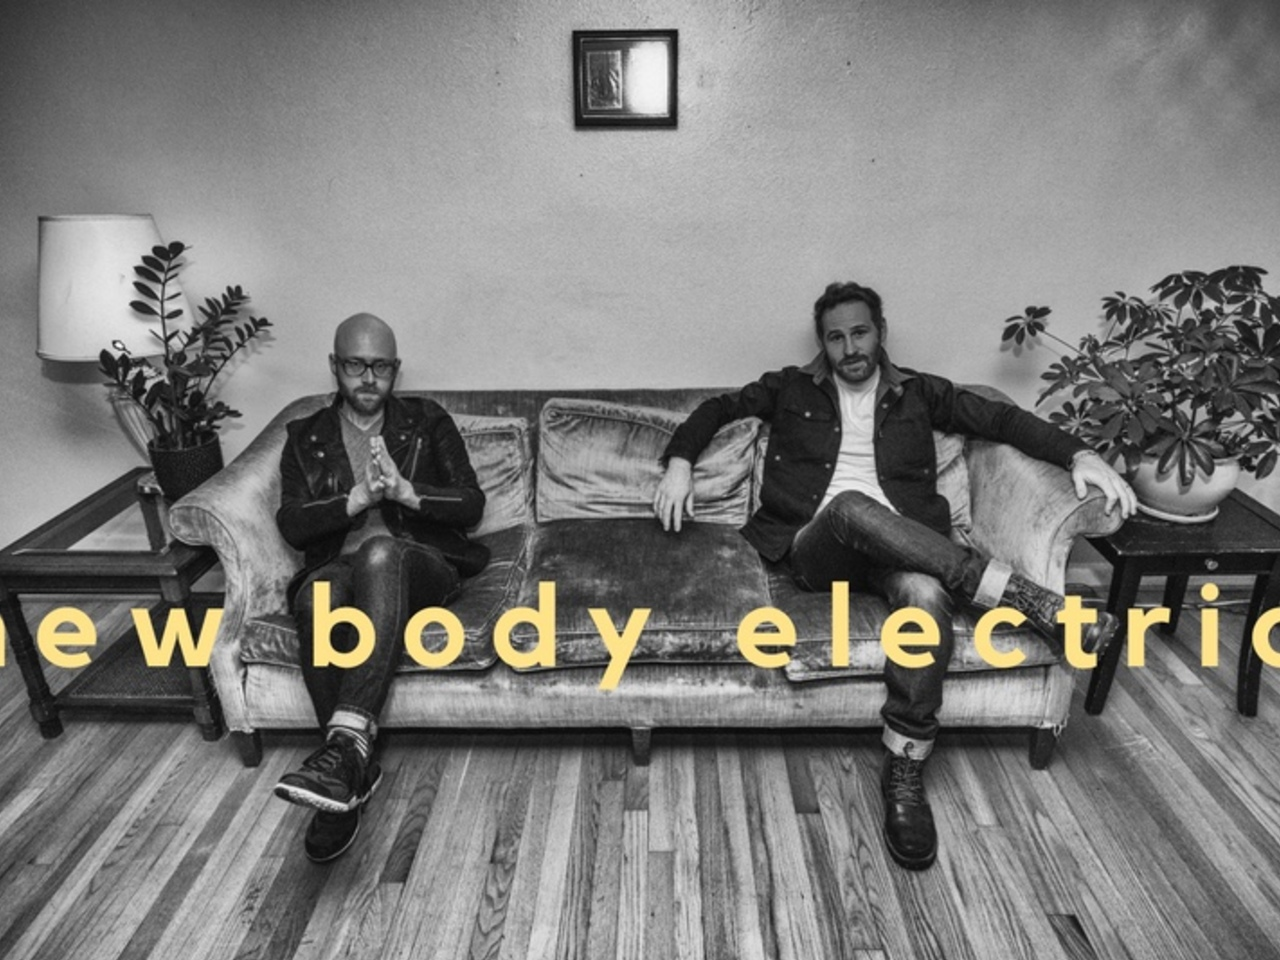 Photo of new-body-electric